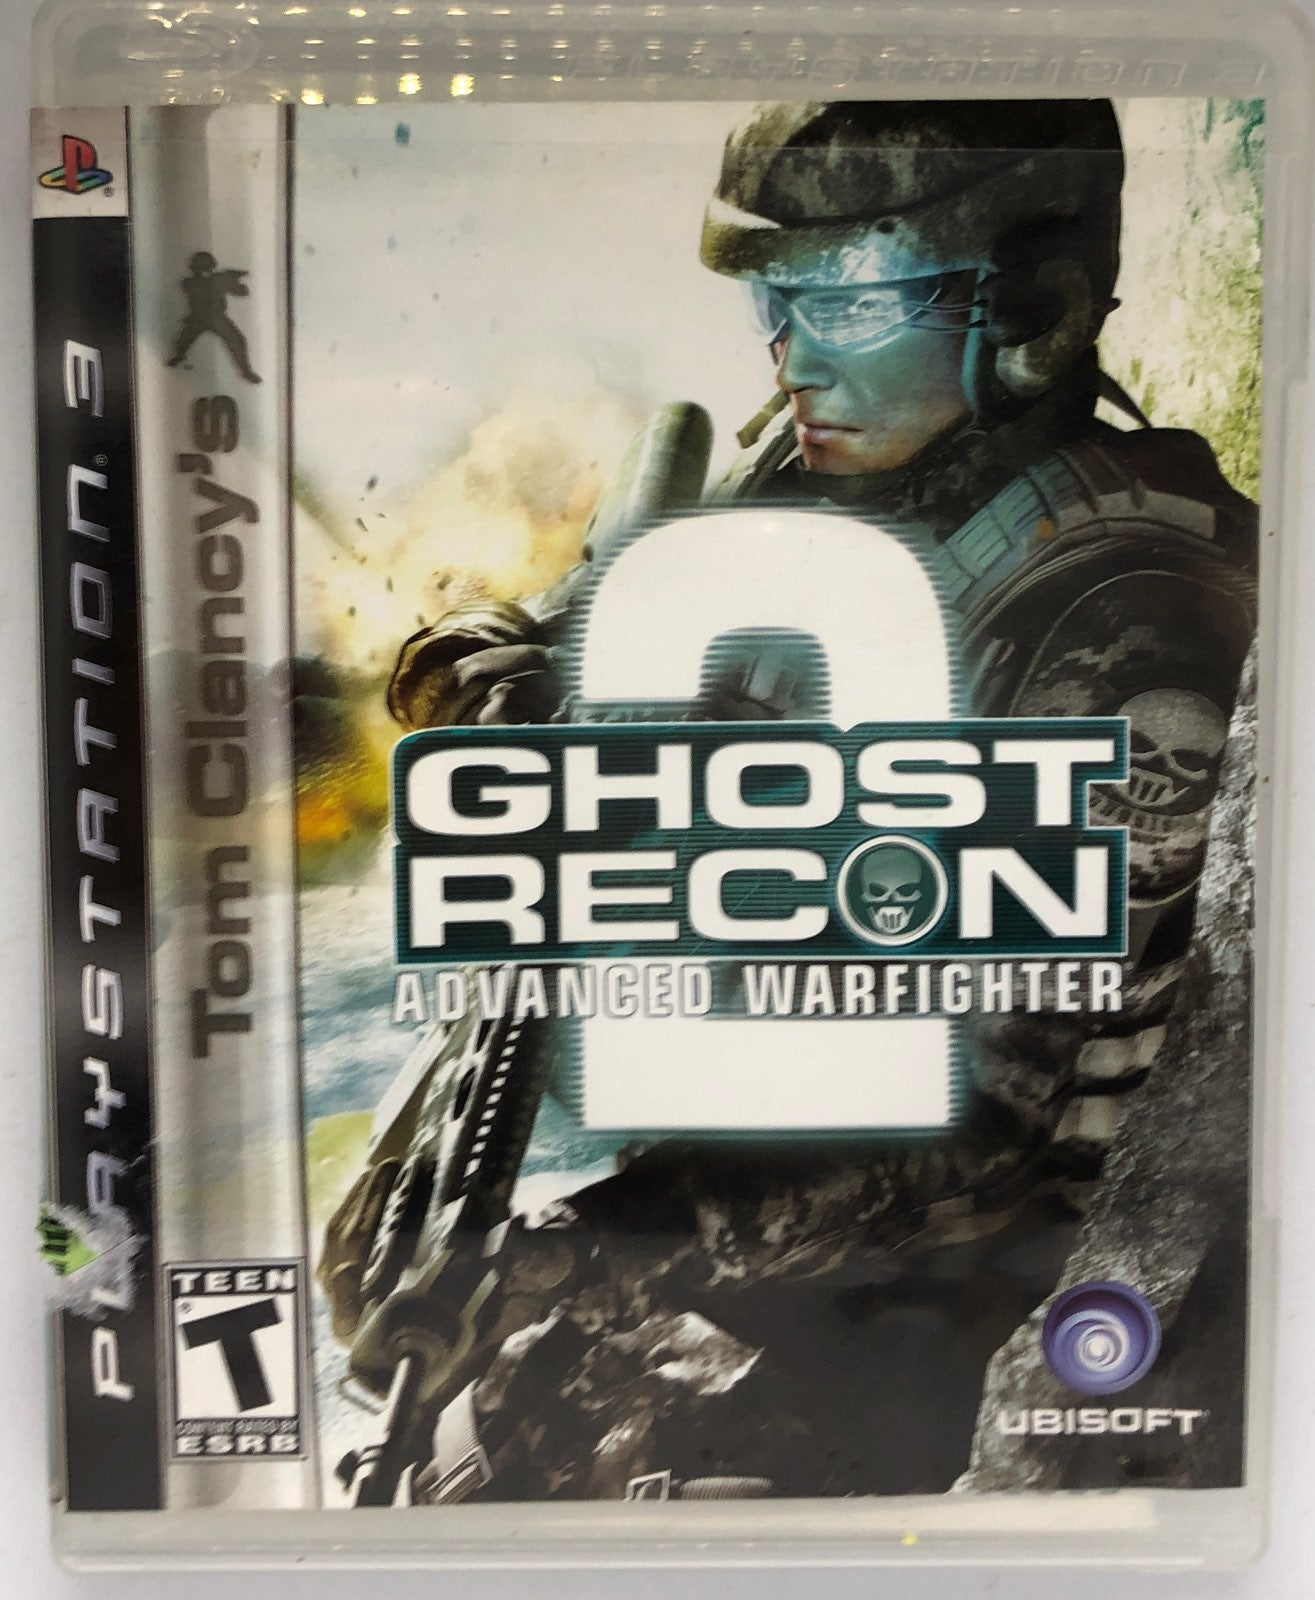 Playstation 3 game: Ghost Recon Advanced